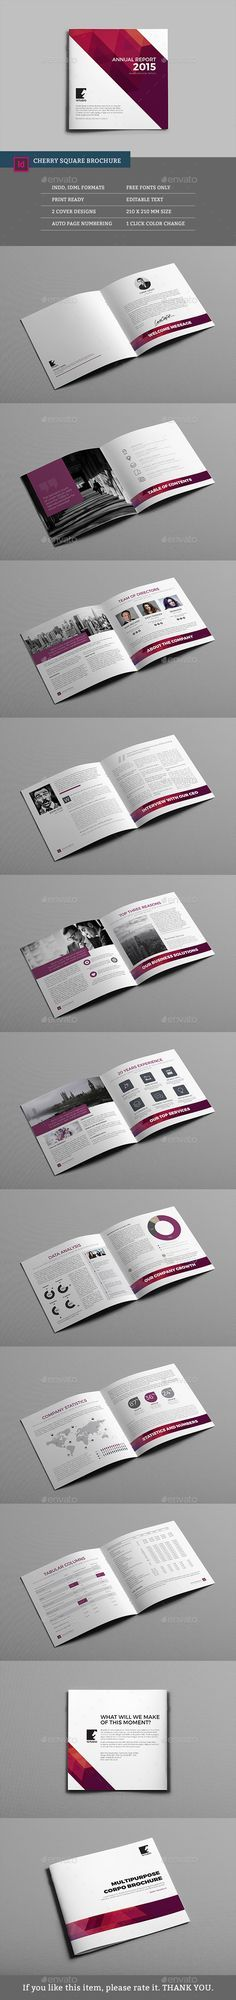 Cherry Square Multipurpose Brochure Template InDesign INDD #design Download: http://graphicriver.net/item/cherry-square-multipurpose-brochure/14109417?ref=ksioks